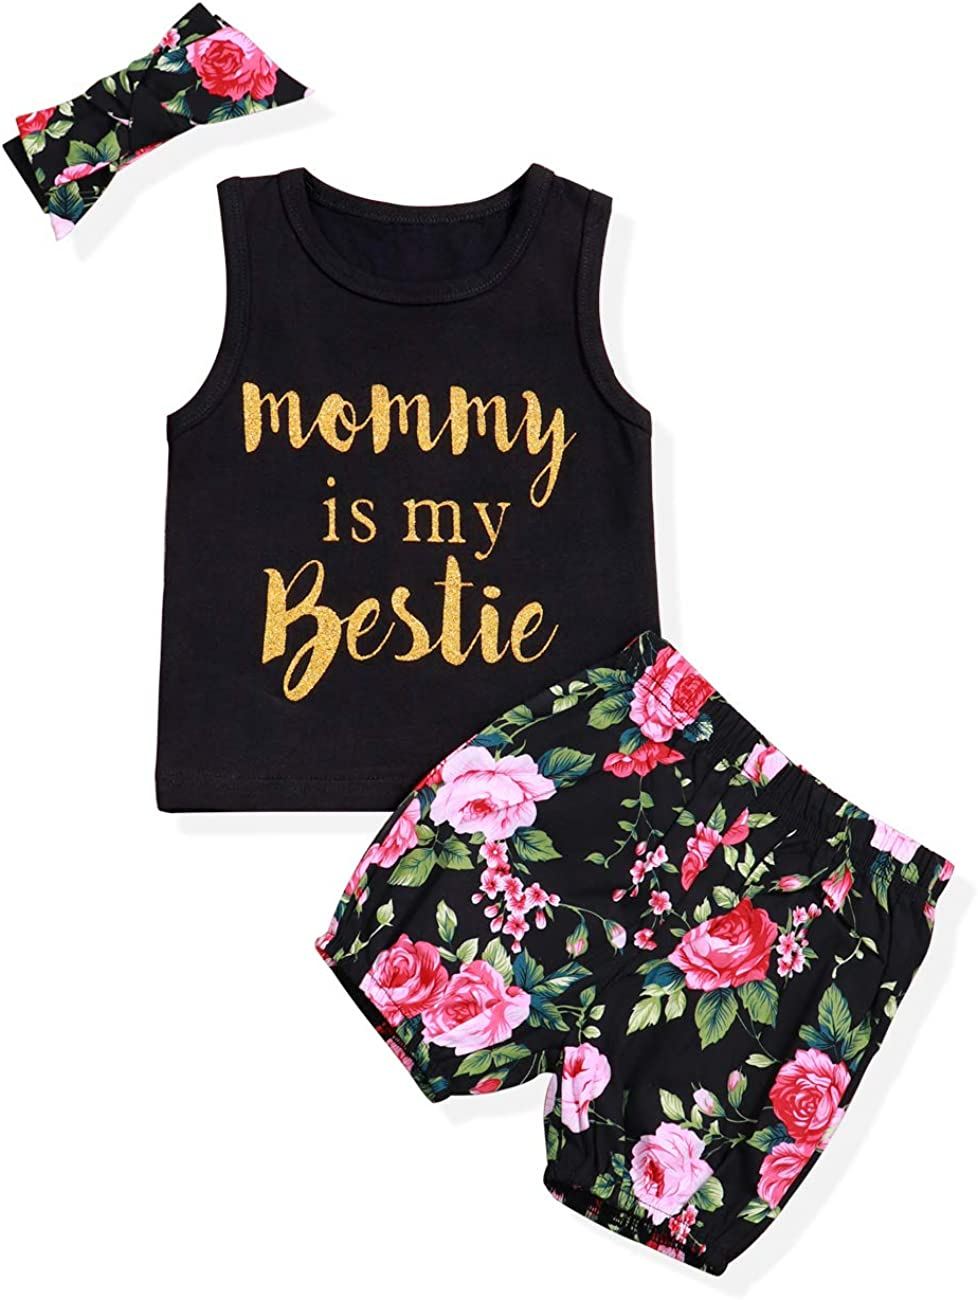 Infant Baby Girl Clothes Mommy is My Bestie Black Sleeveless Vest Tops Floral Short Pants and Headband Summer Outfit Set